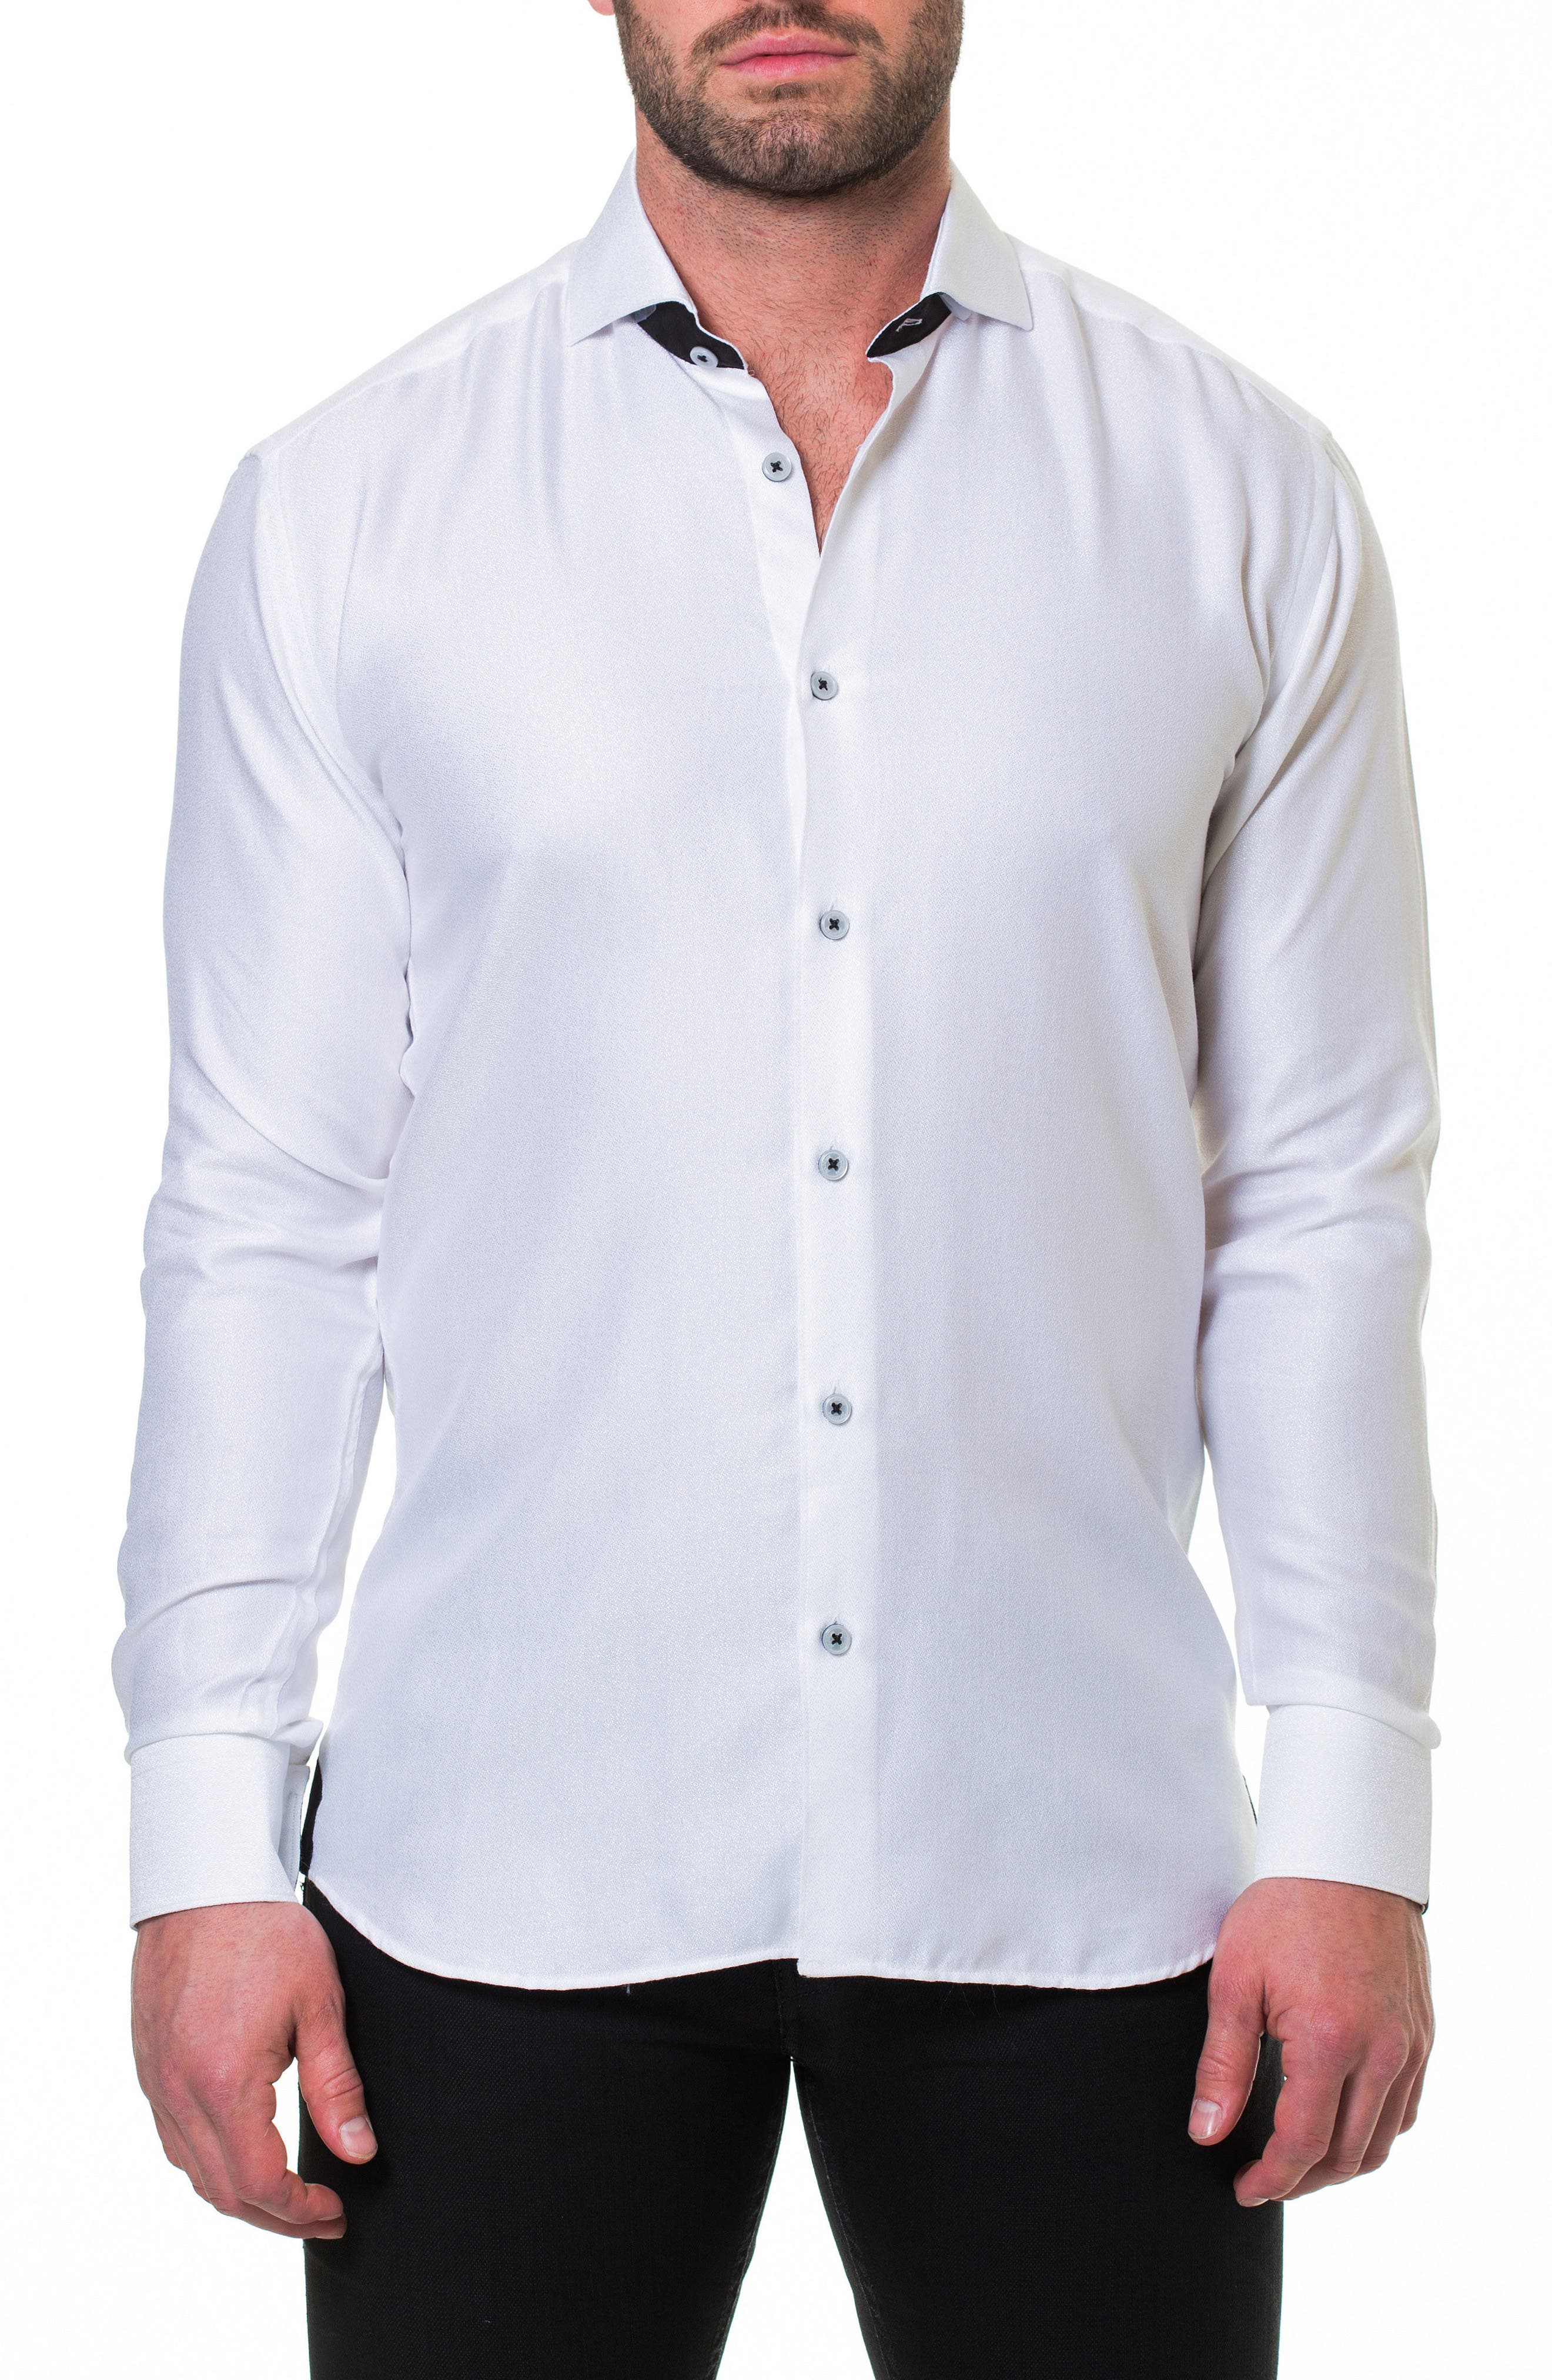 Wall Street Serenity White Slim Fit Sport Shirt,                         Main,                         color, 110